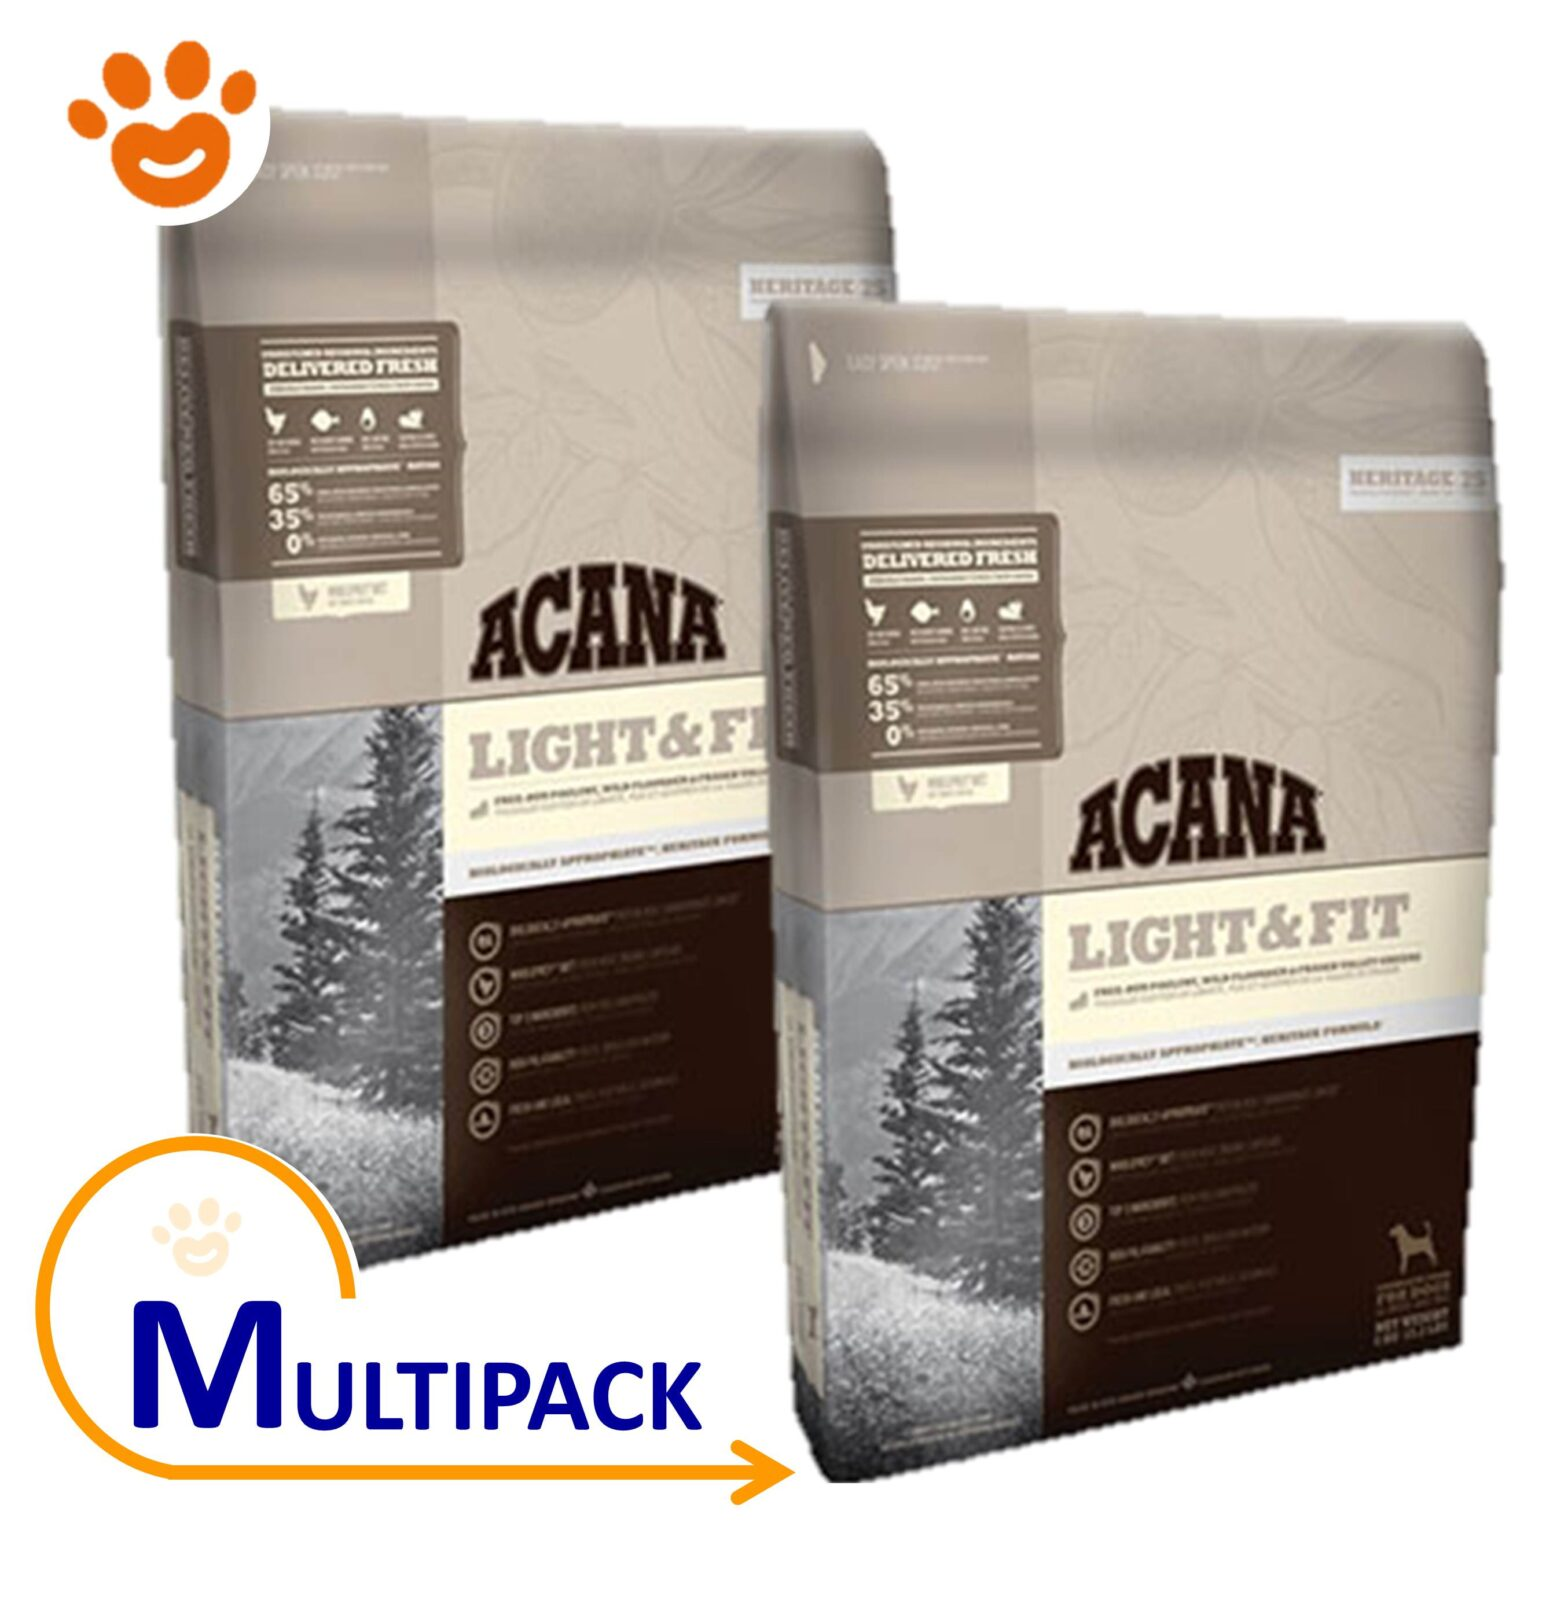 acana light and fit reviews